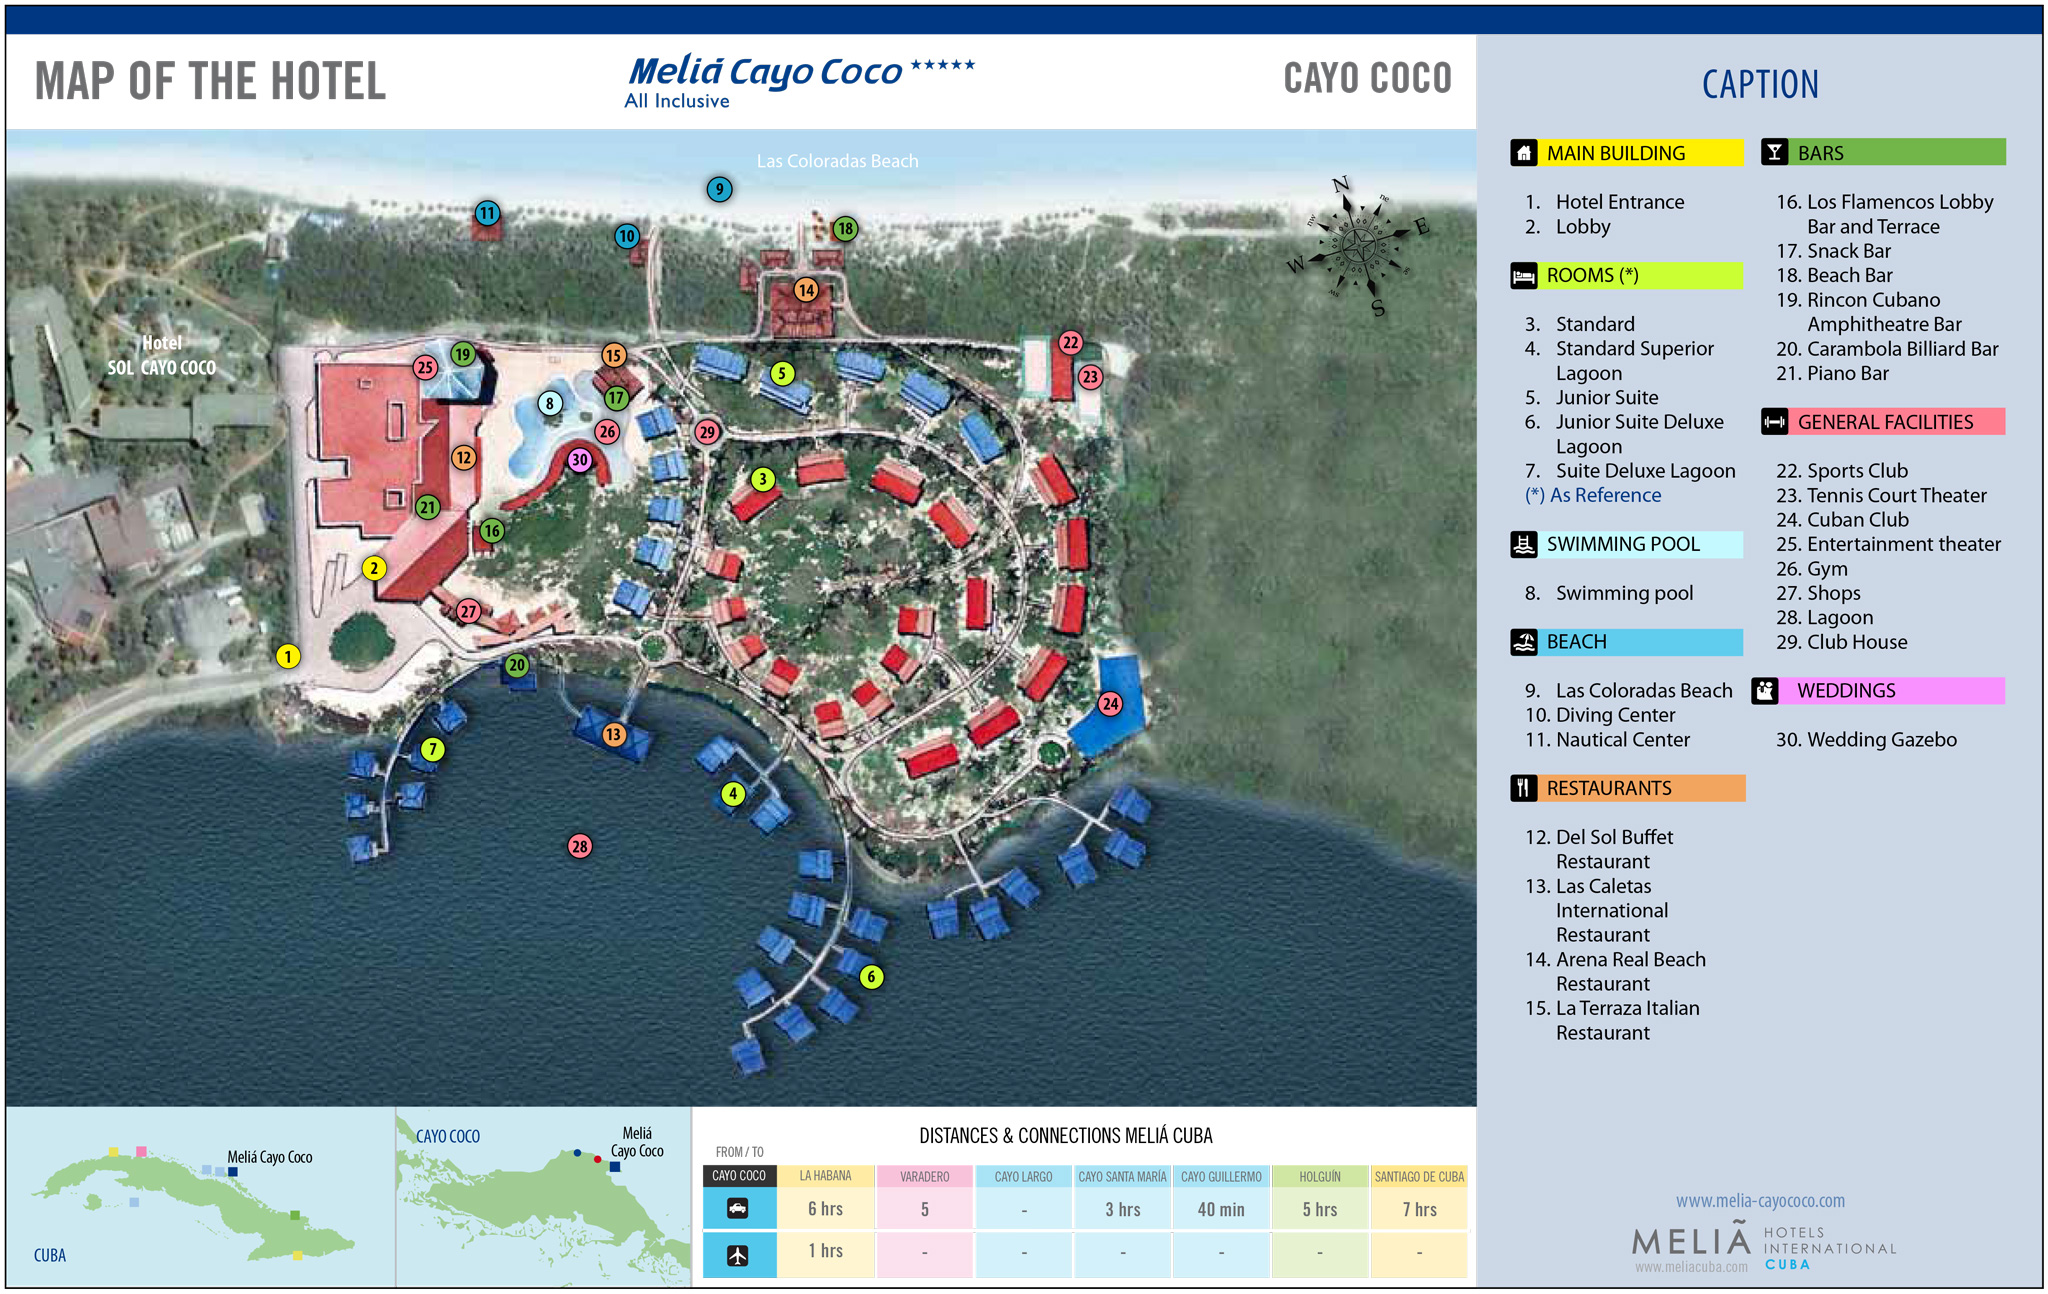 Melia cayo coco resort map images for Site des hotels